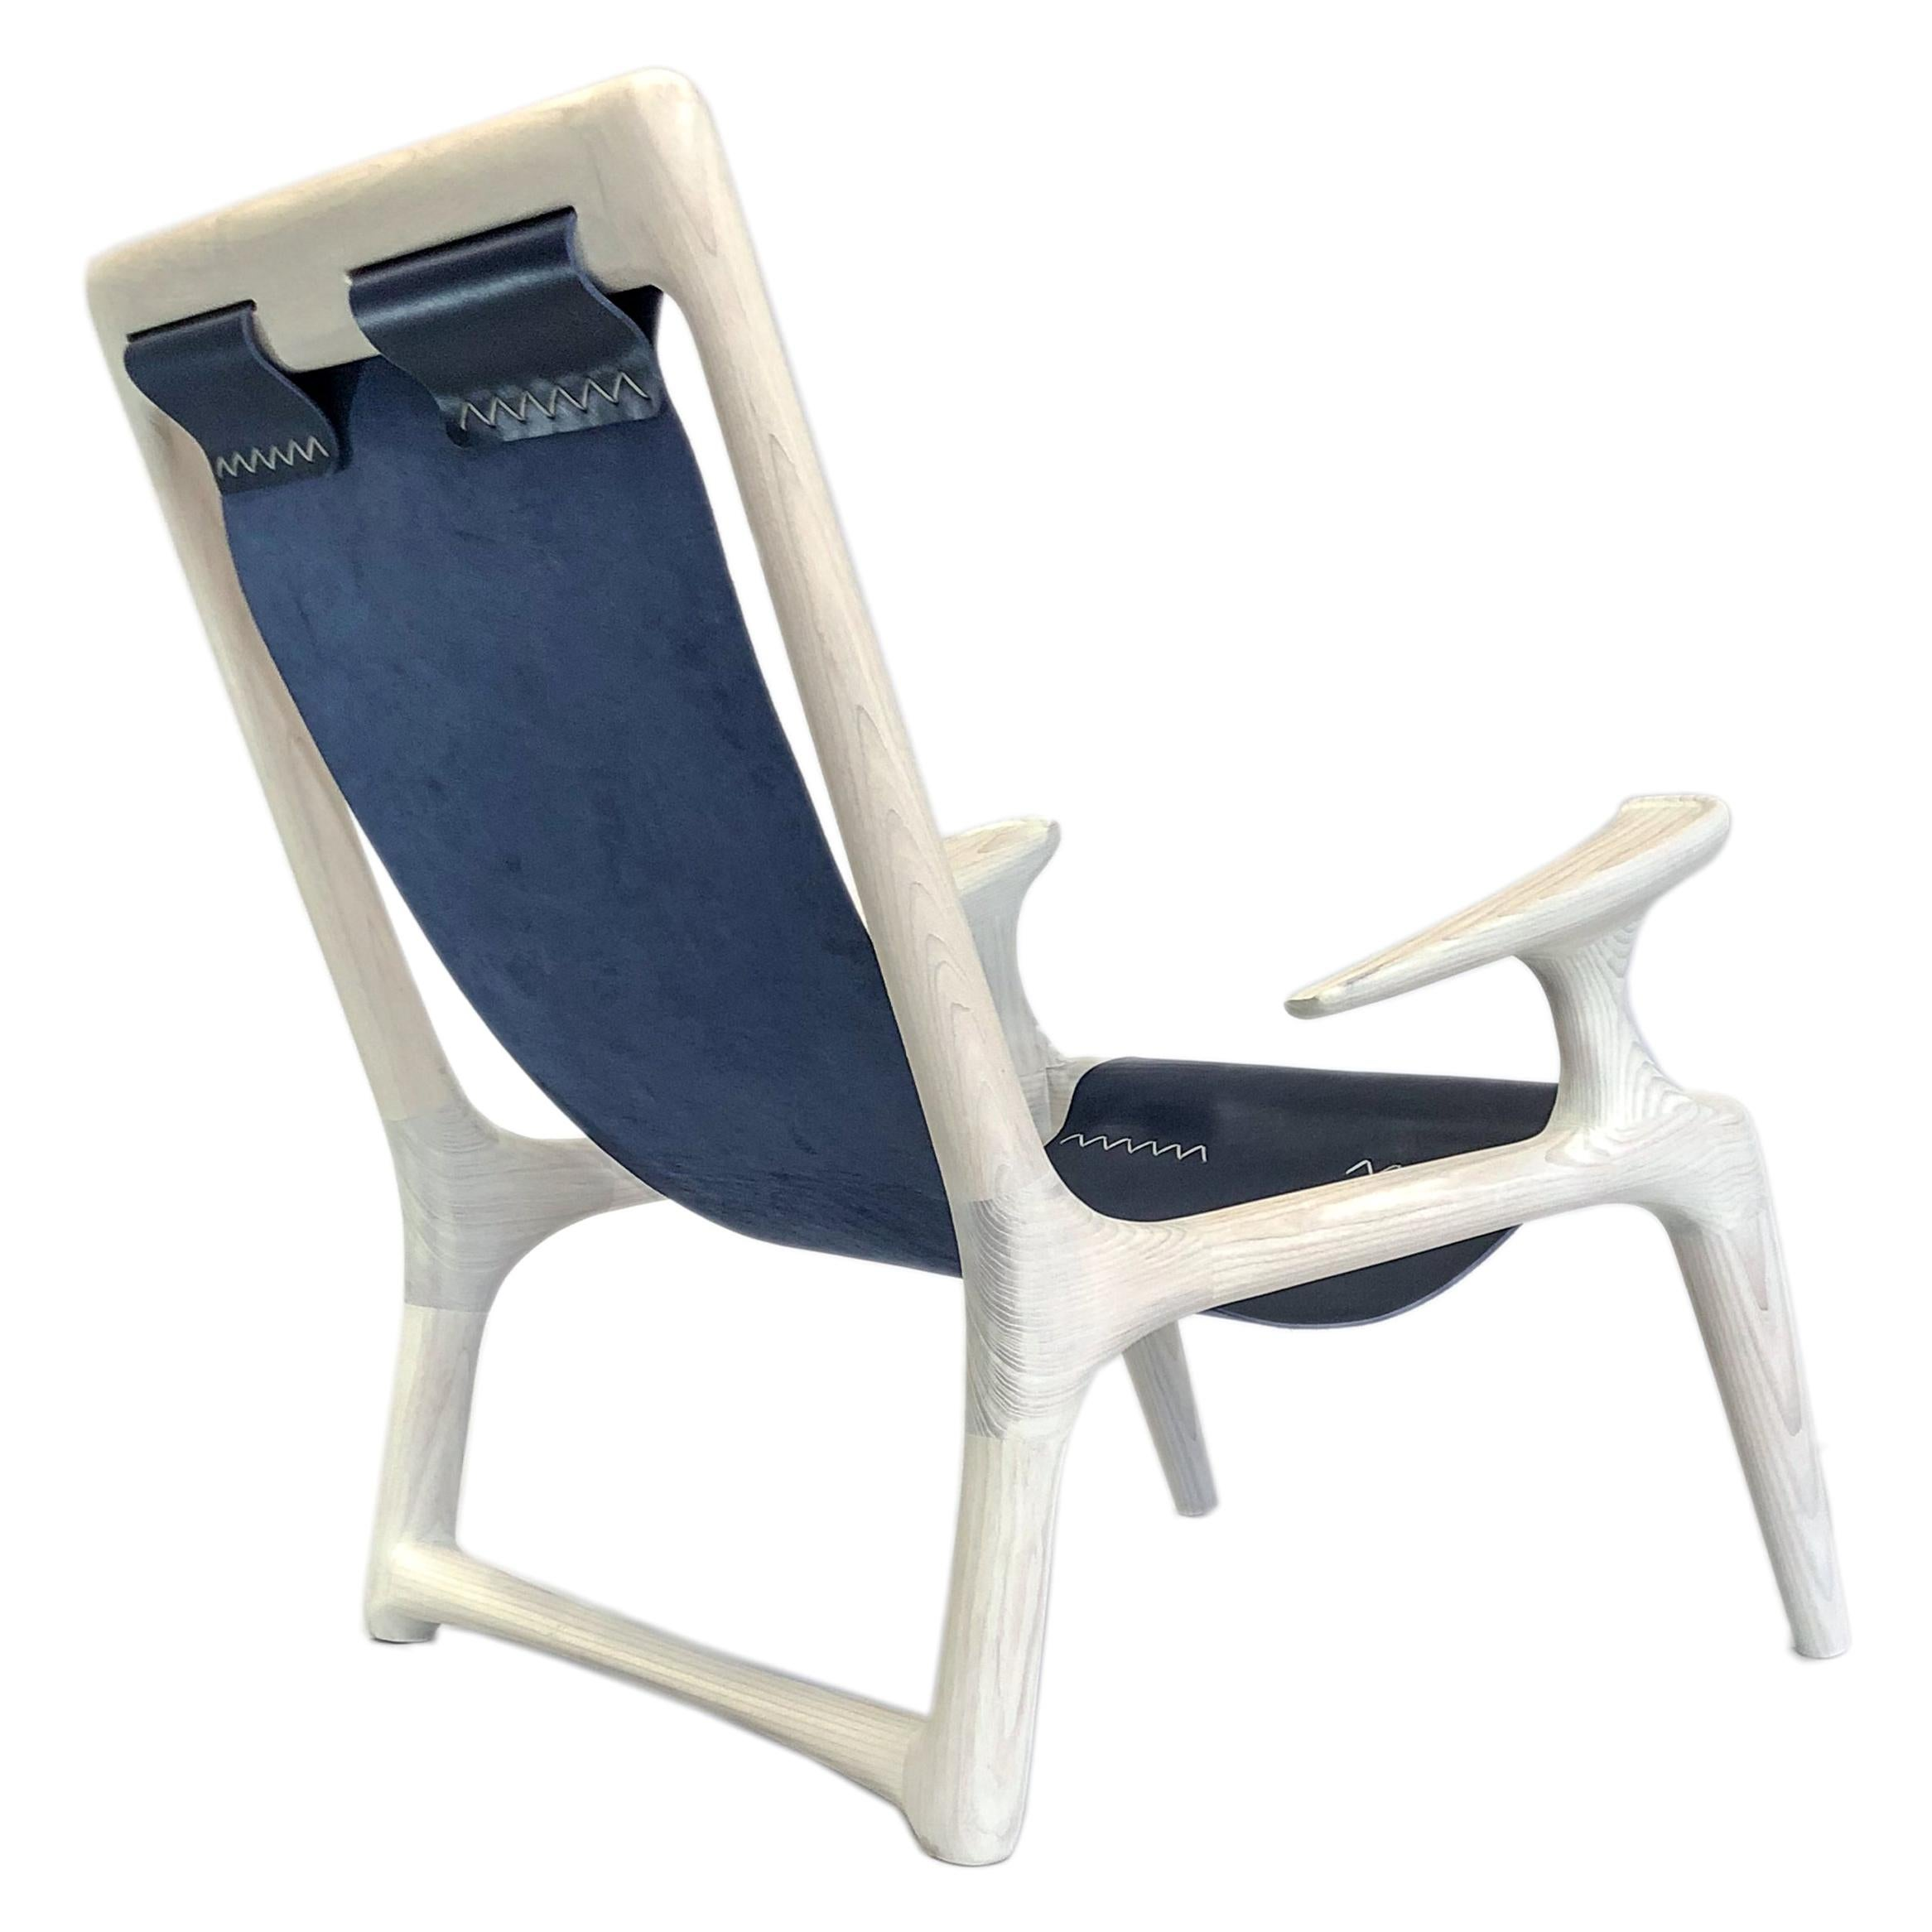 Handmade Sling Arm Chair in White Ash & Navy Leather, by Fernweh Woodworking